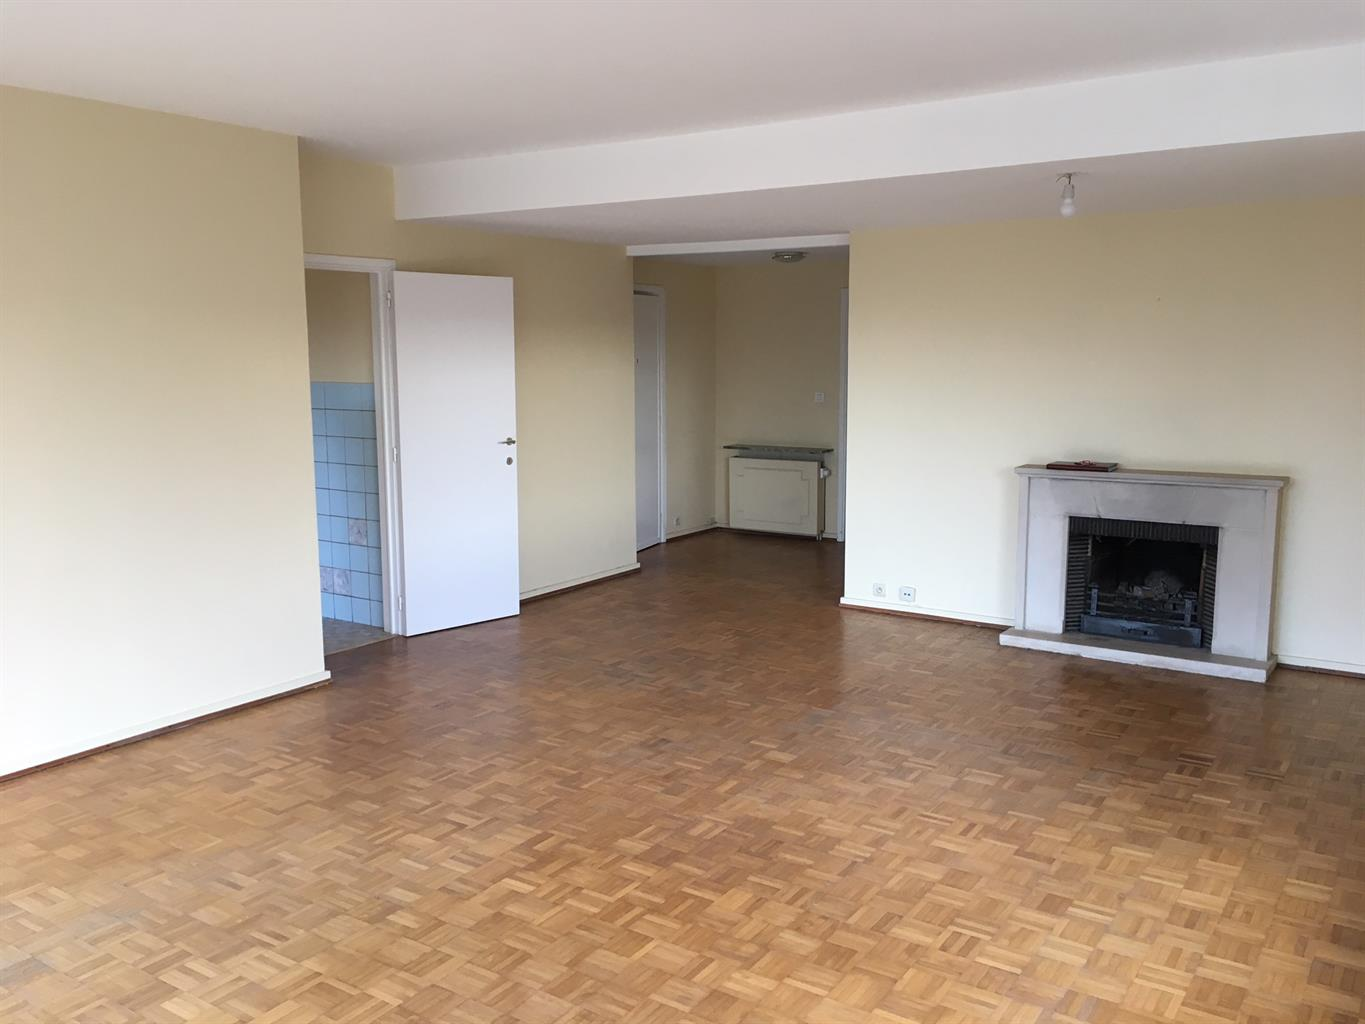 Appartement - Uccle - #3643887-3